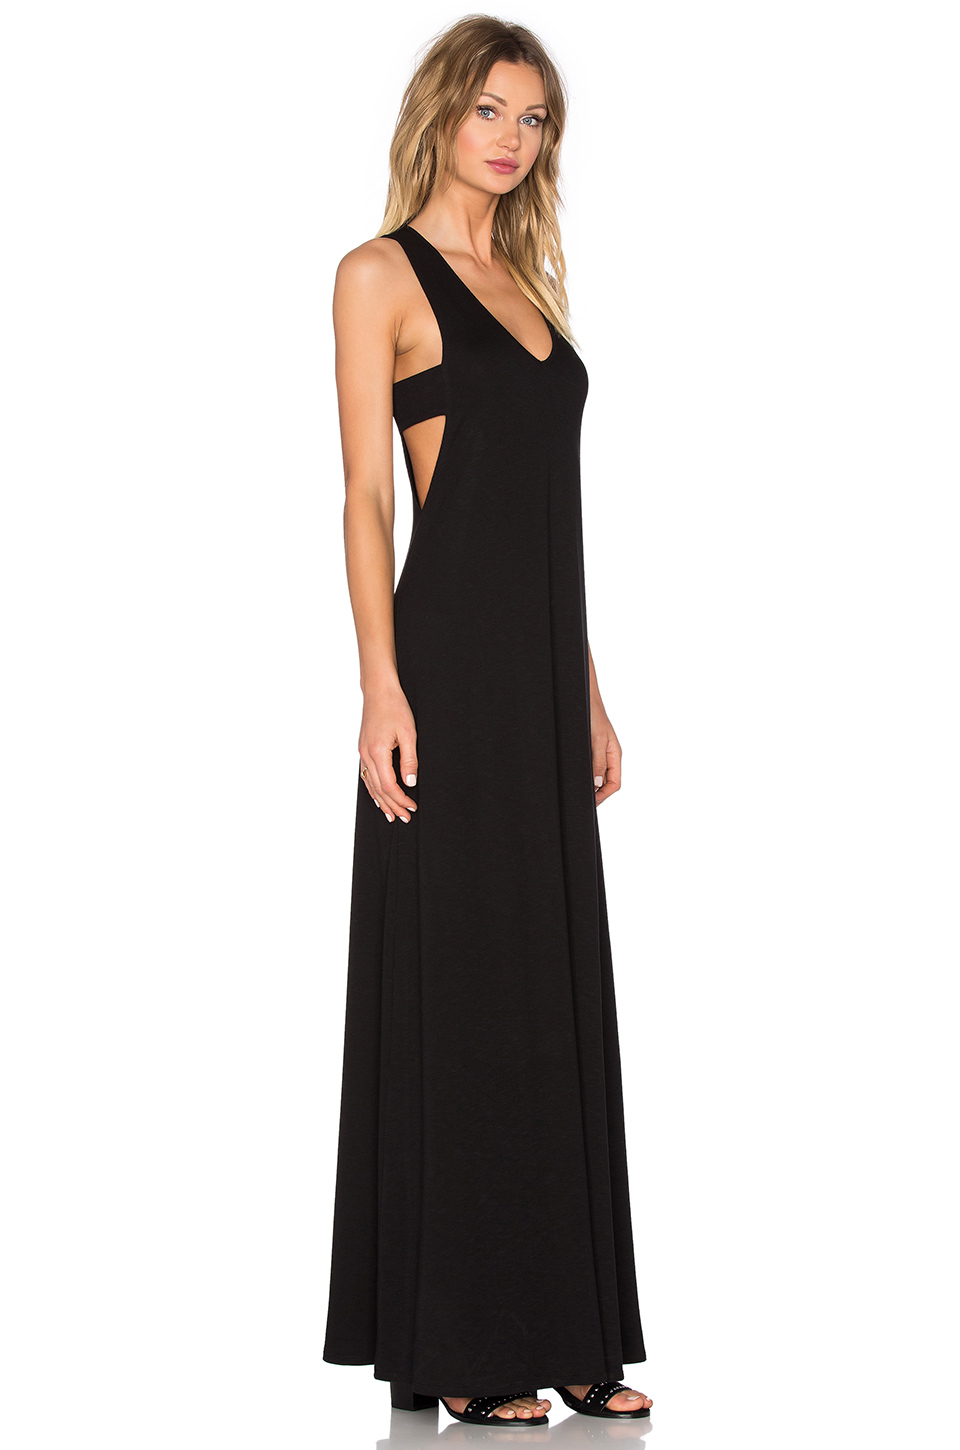 Lanston Cutout Maxi Dress in Black | Lyst